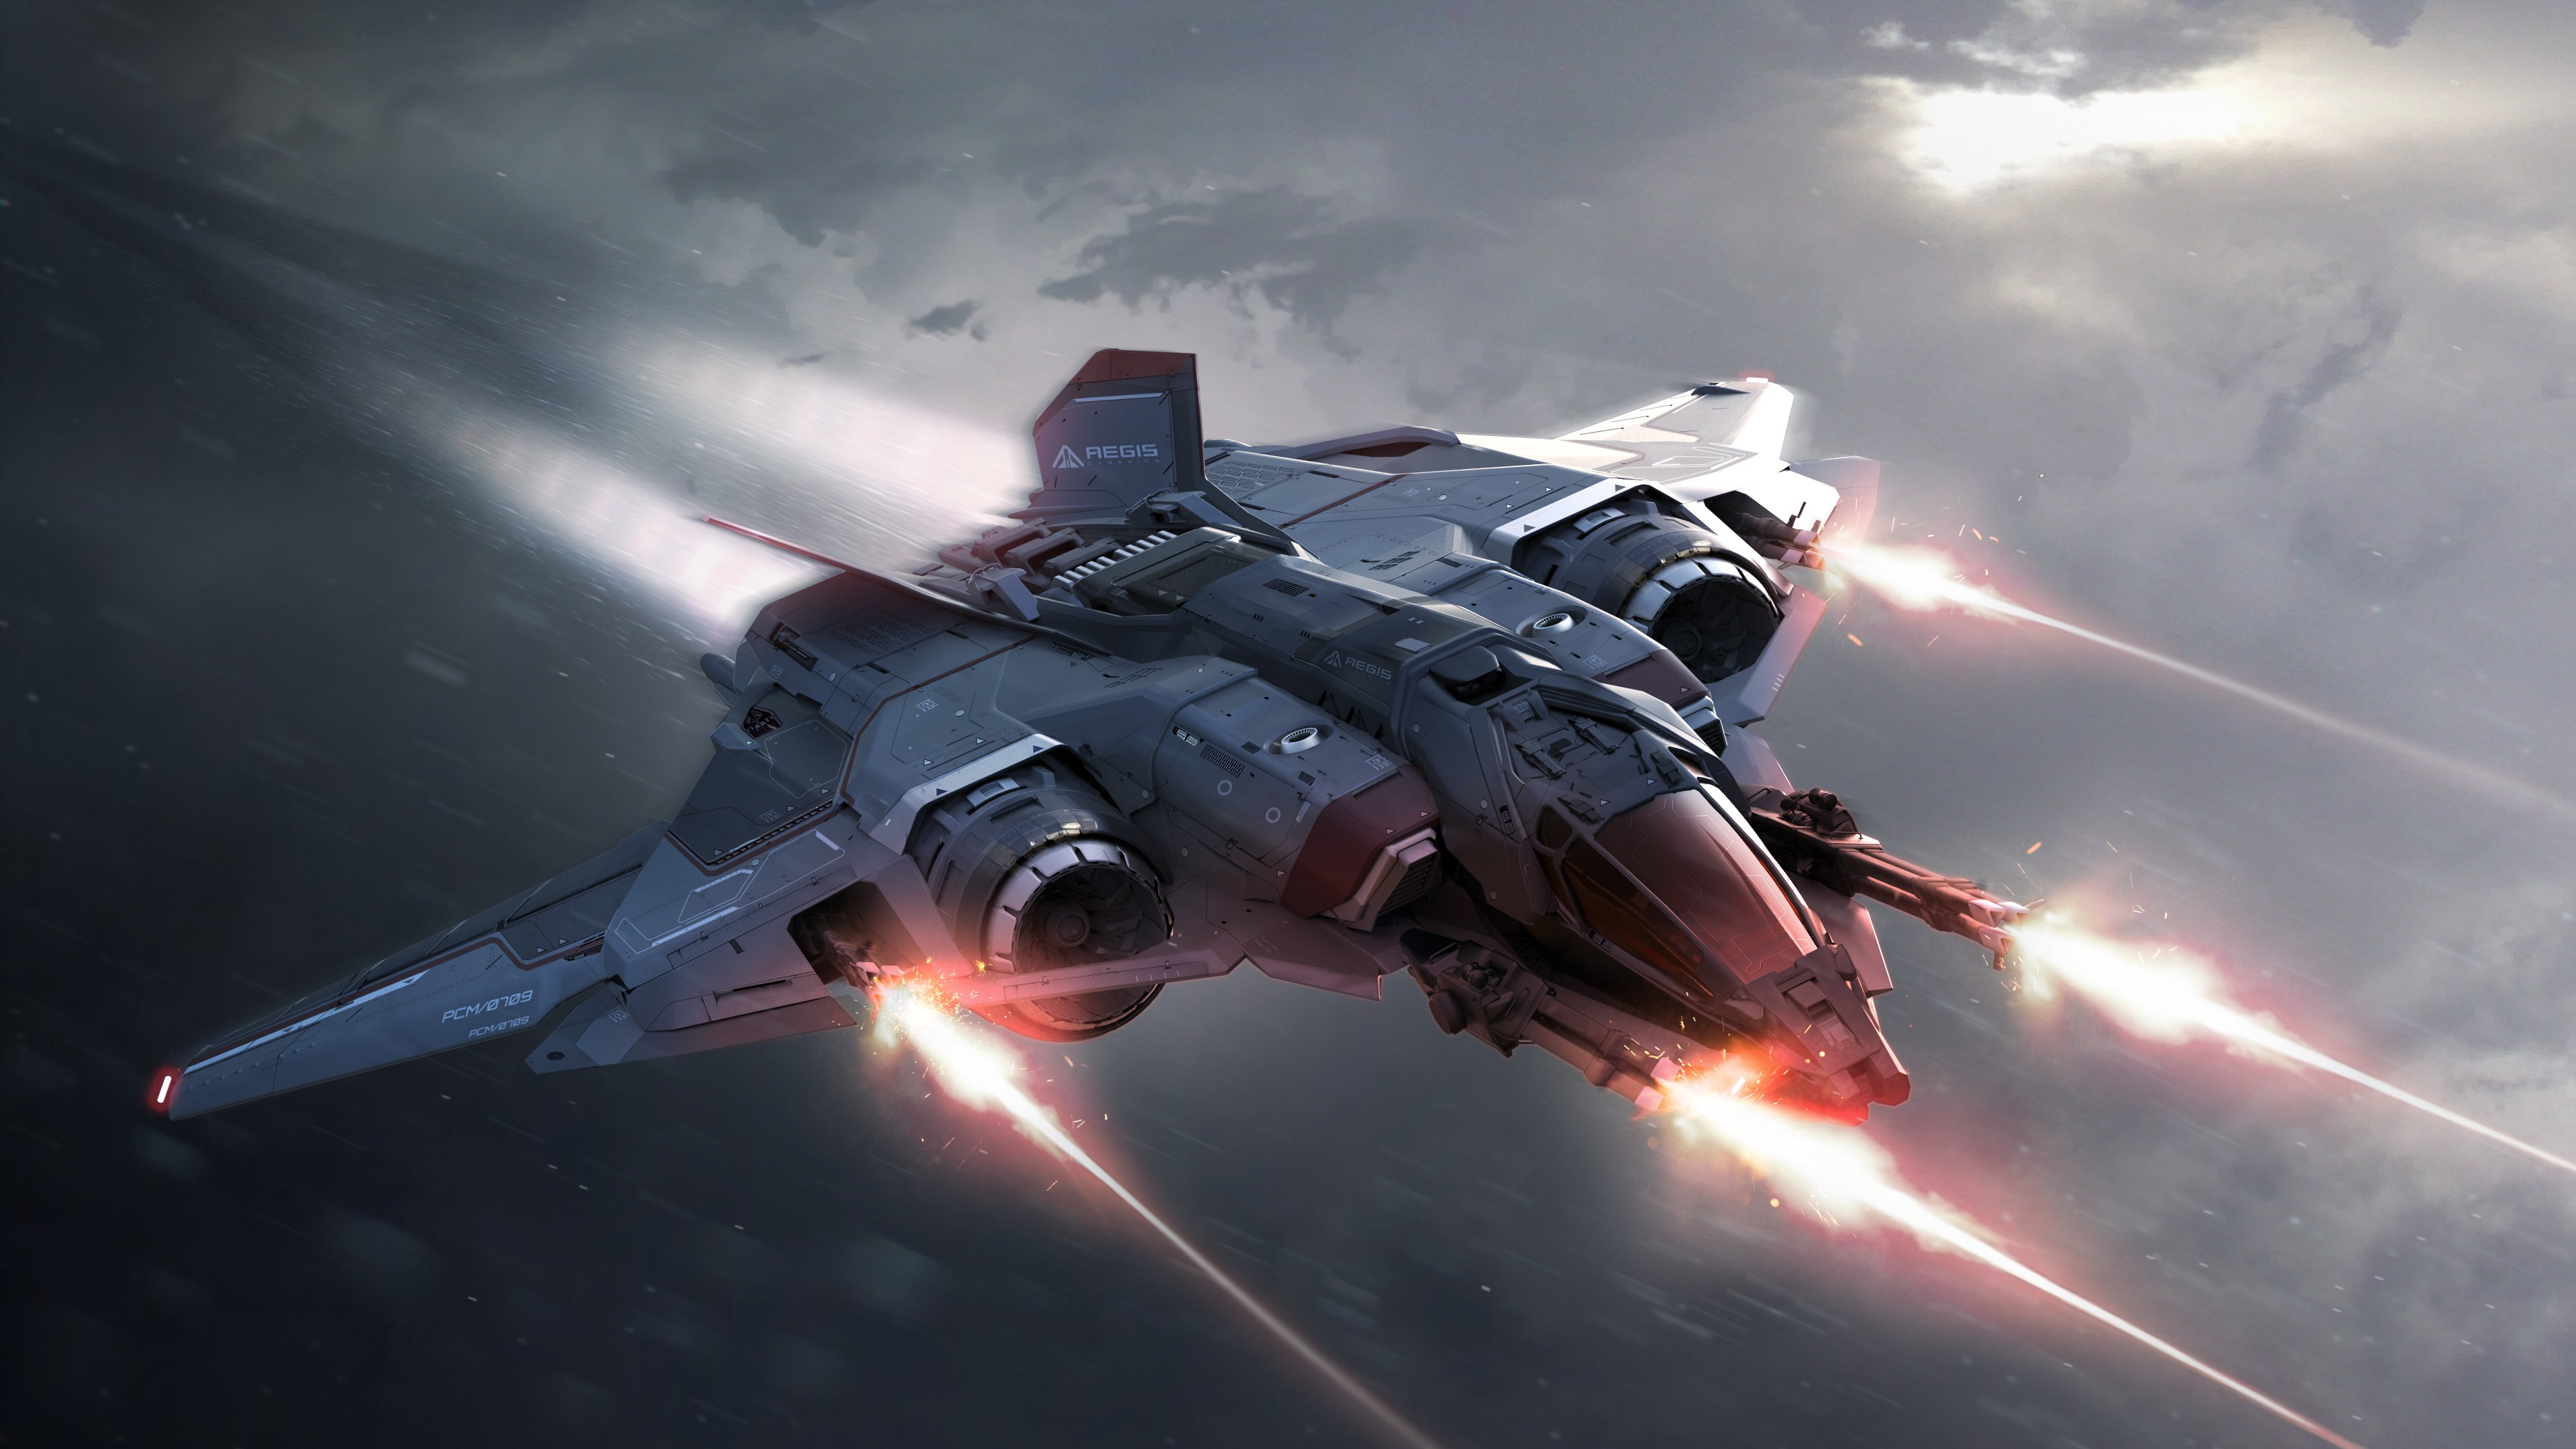 4k Spaceship Wallpaper Posted By John Peltier